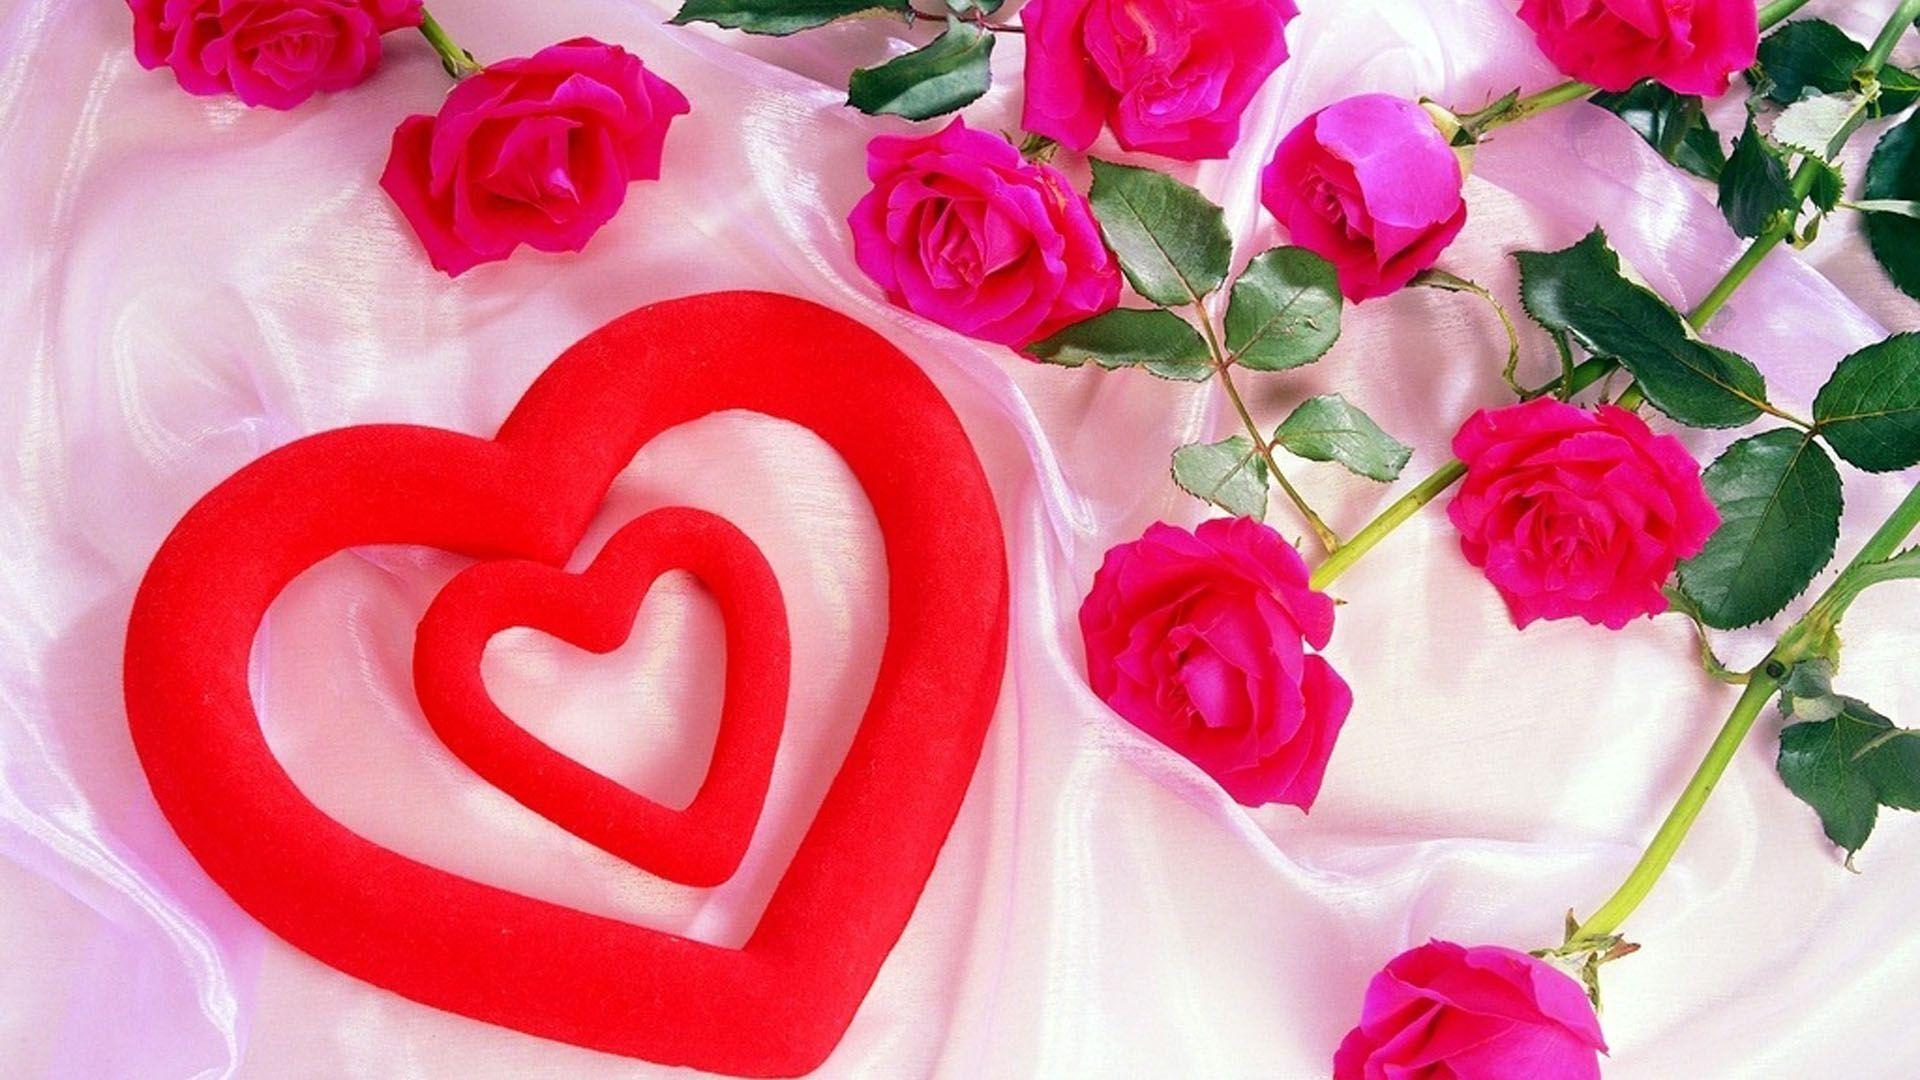 Love Red Rose Heart Wallpapers Wallpapers